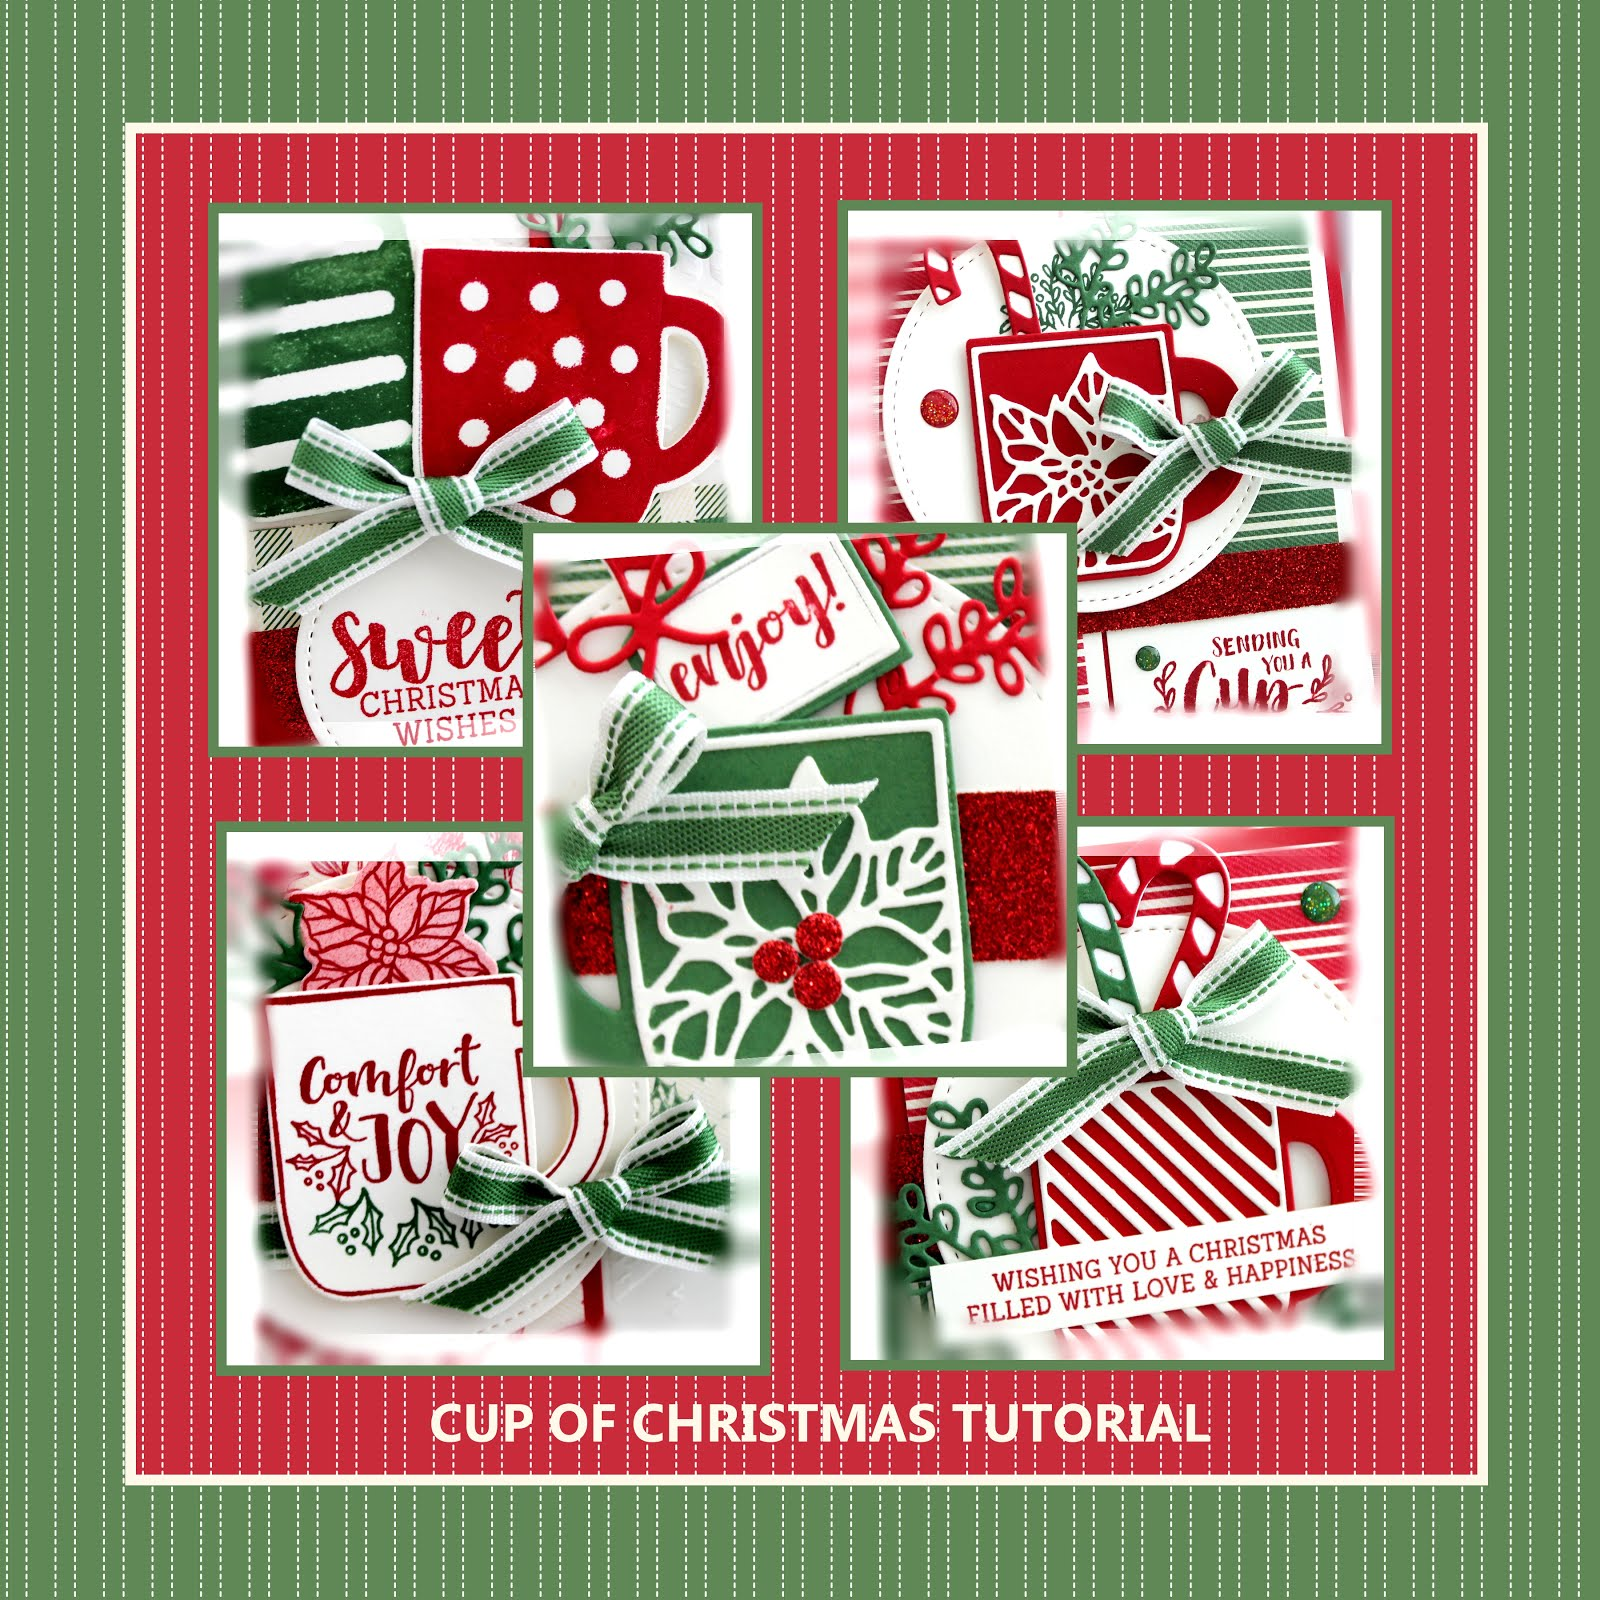 November 2019 Cup of Christmas Tutorial